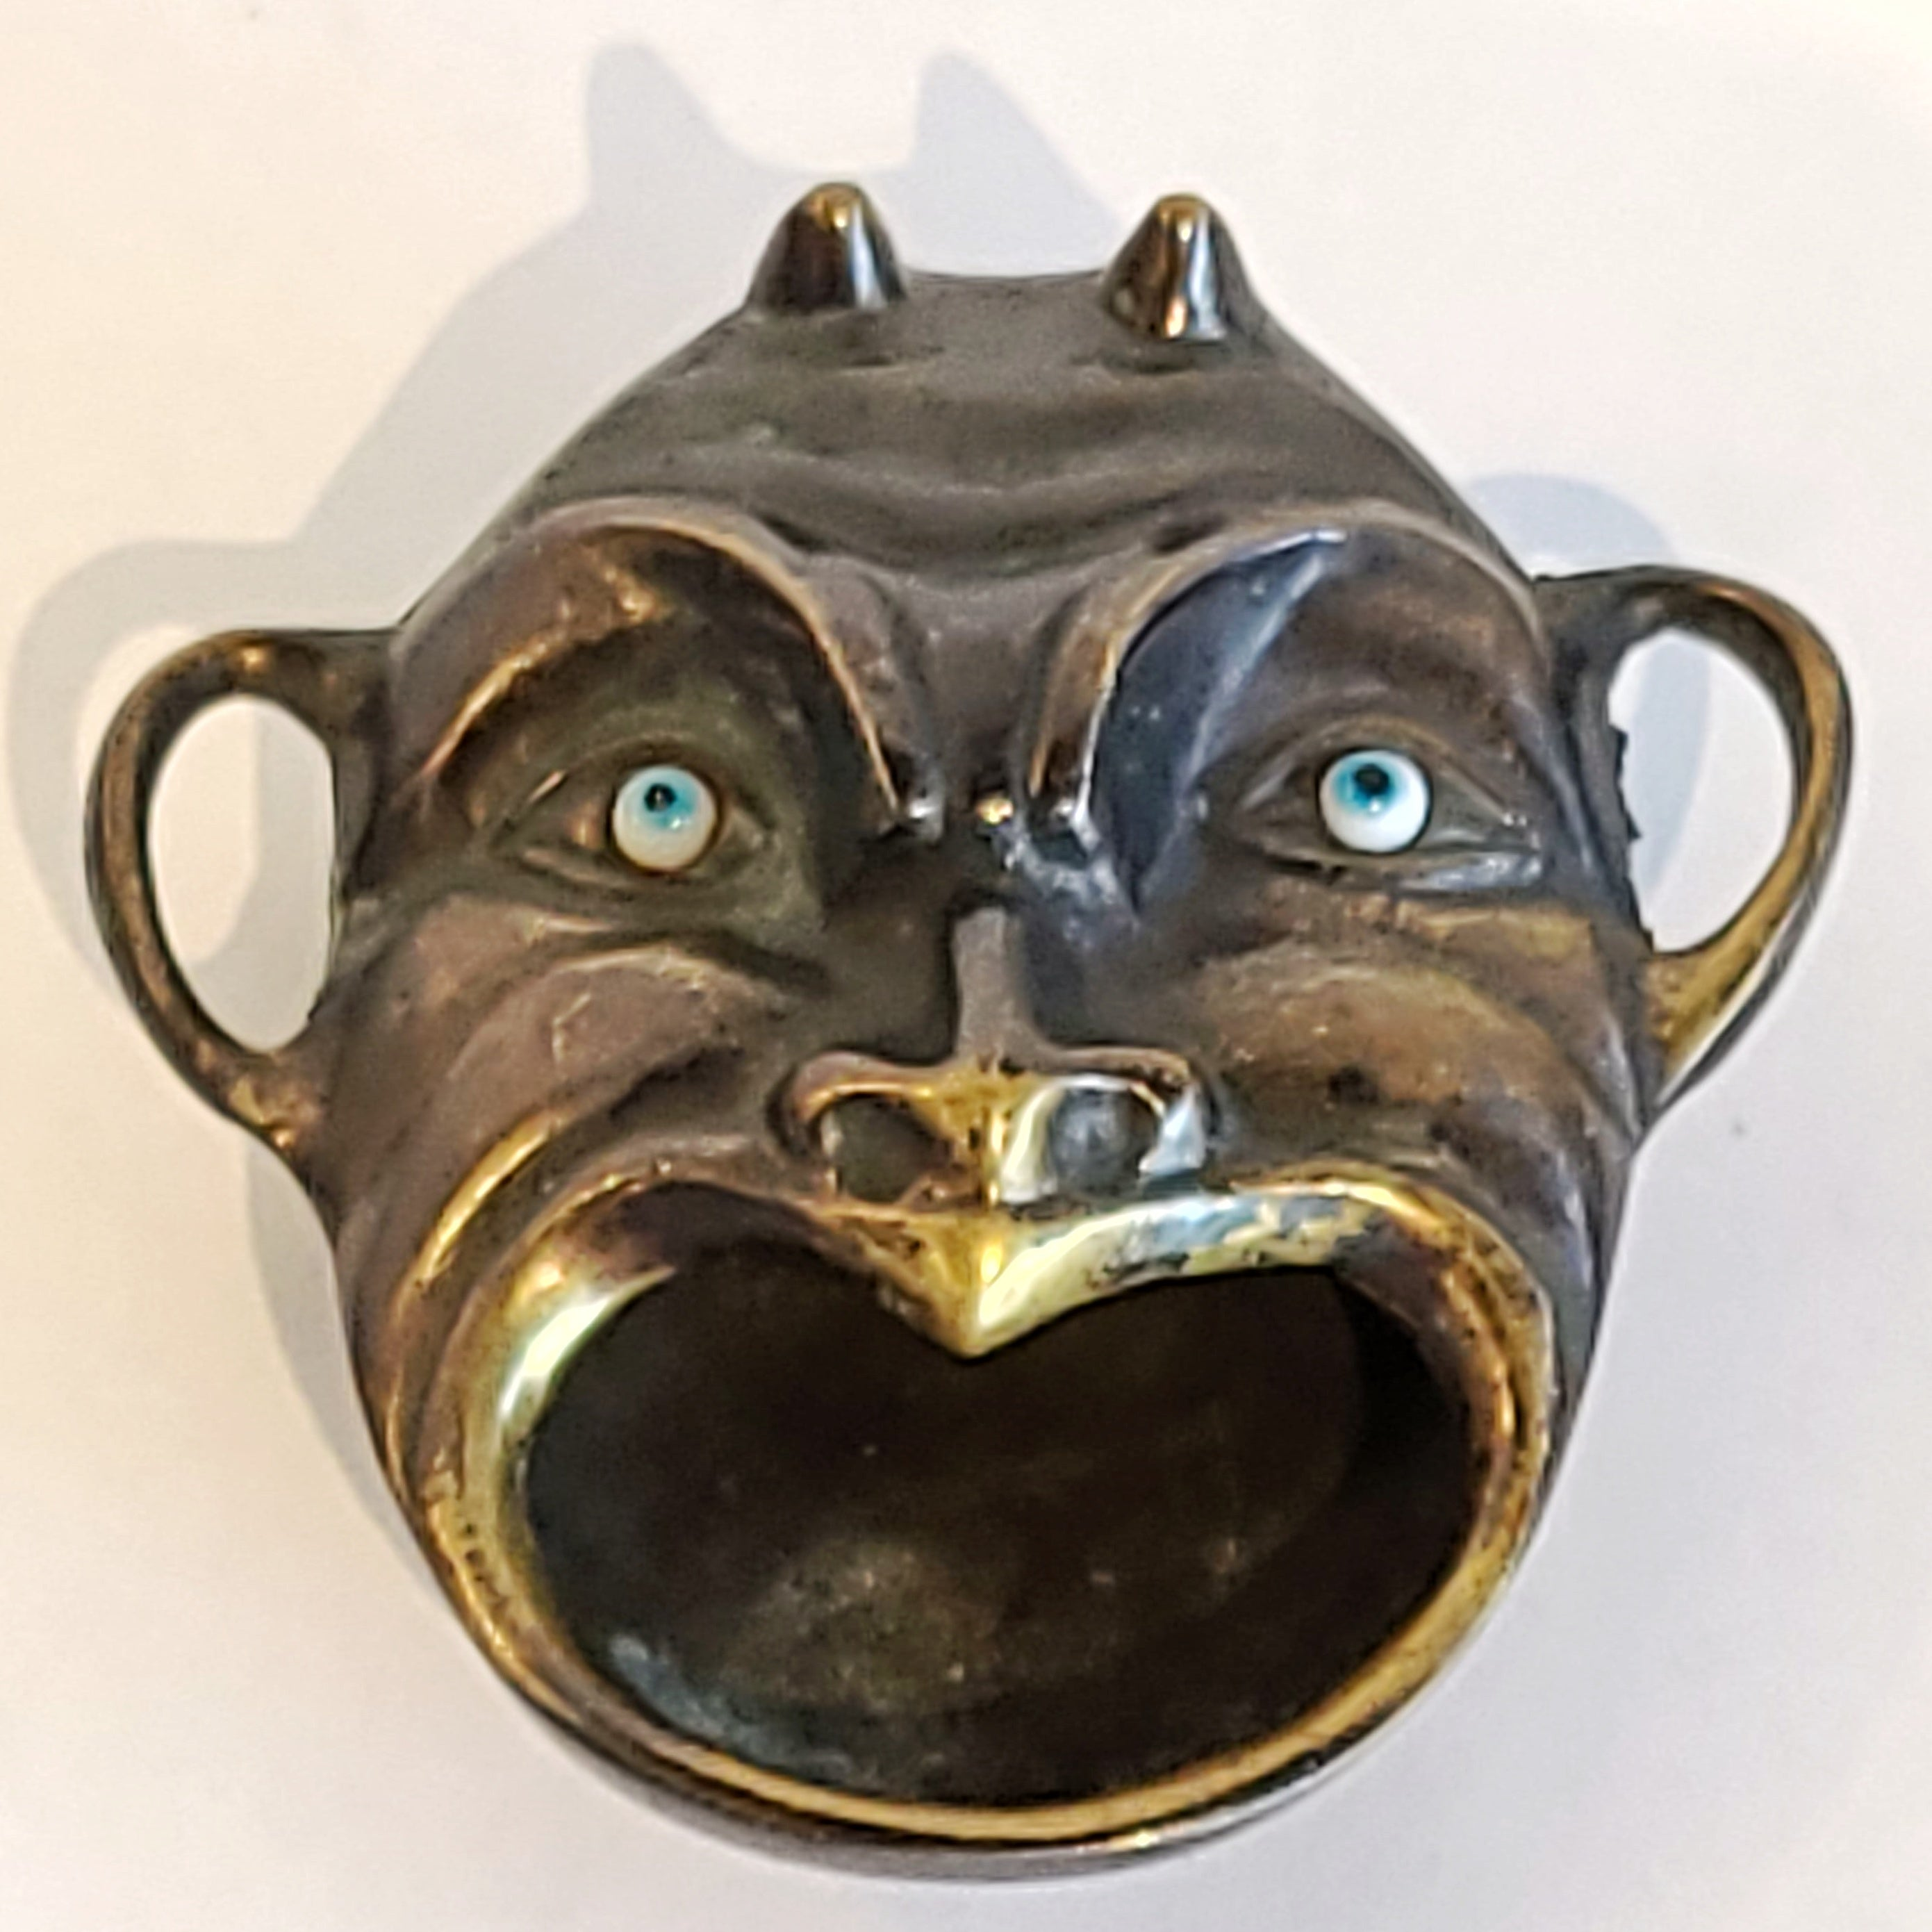 ANTIQUE BRASS DEVIL'S HEAD ASHTRAY WITH GLASS EYES